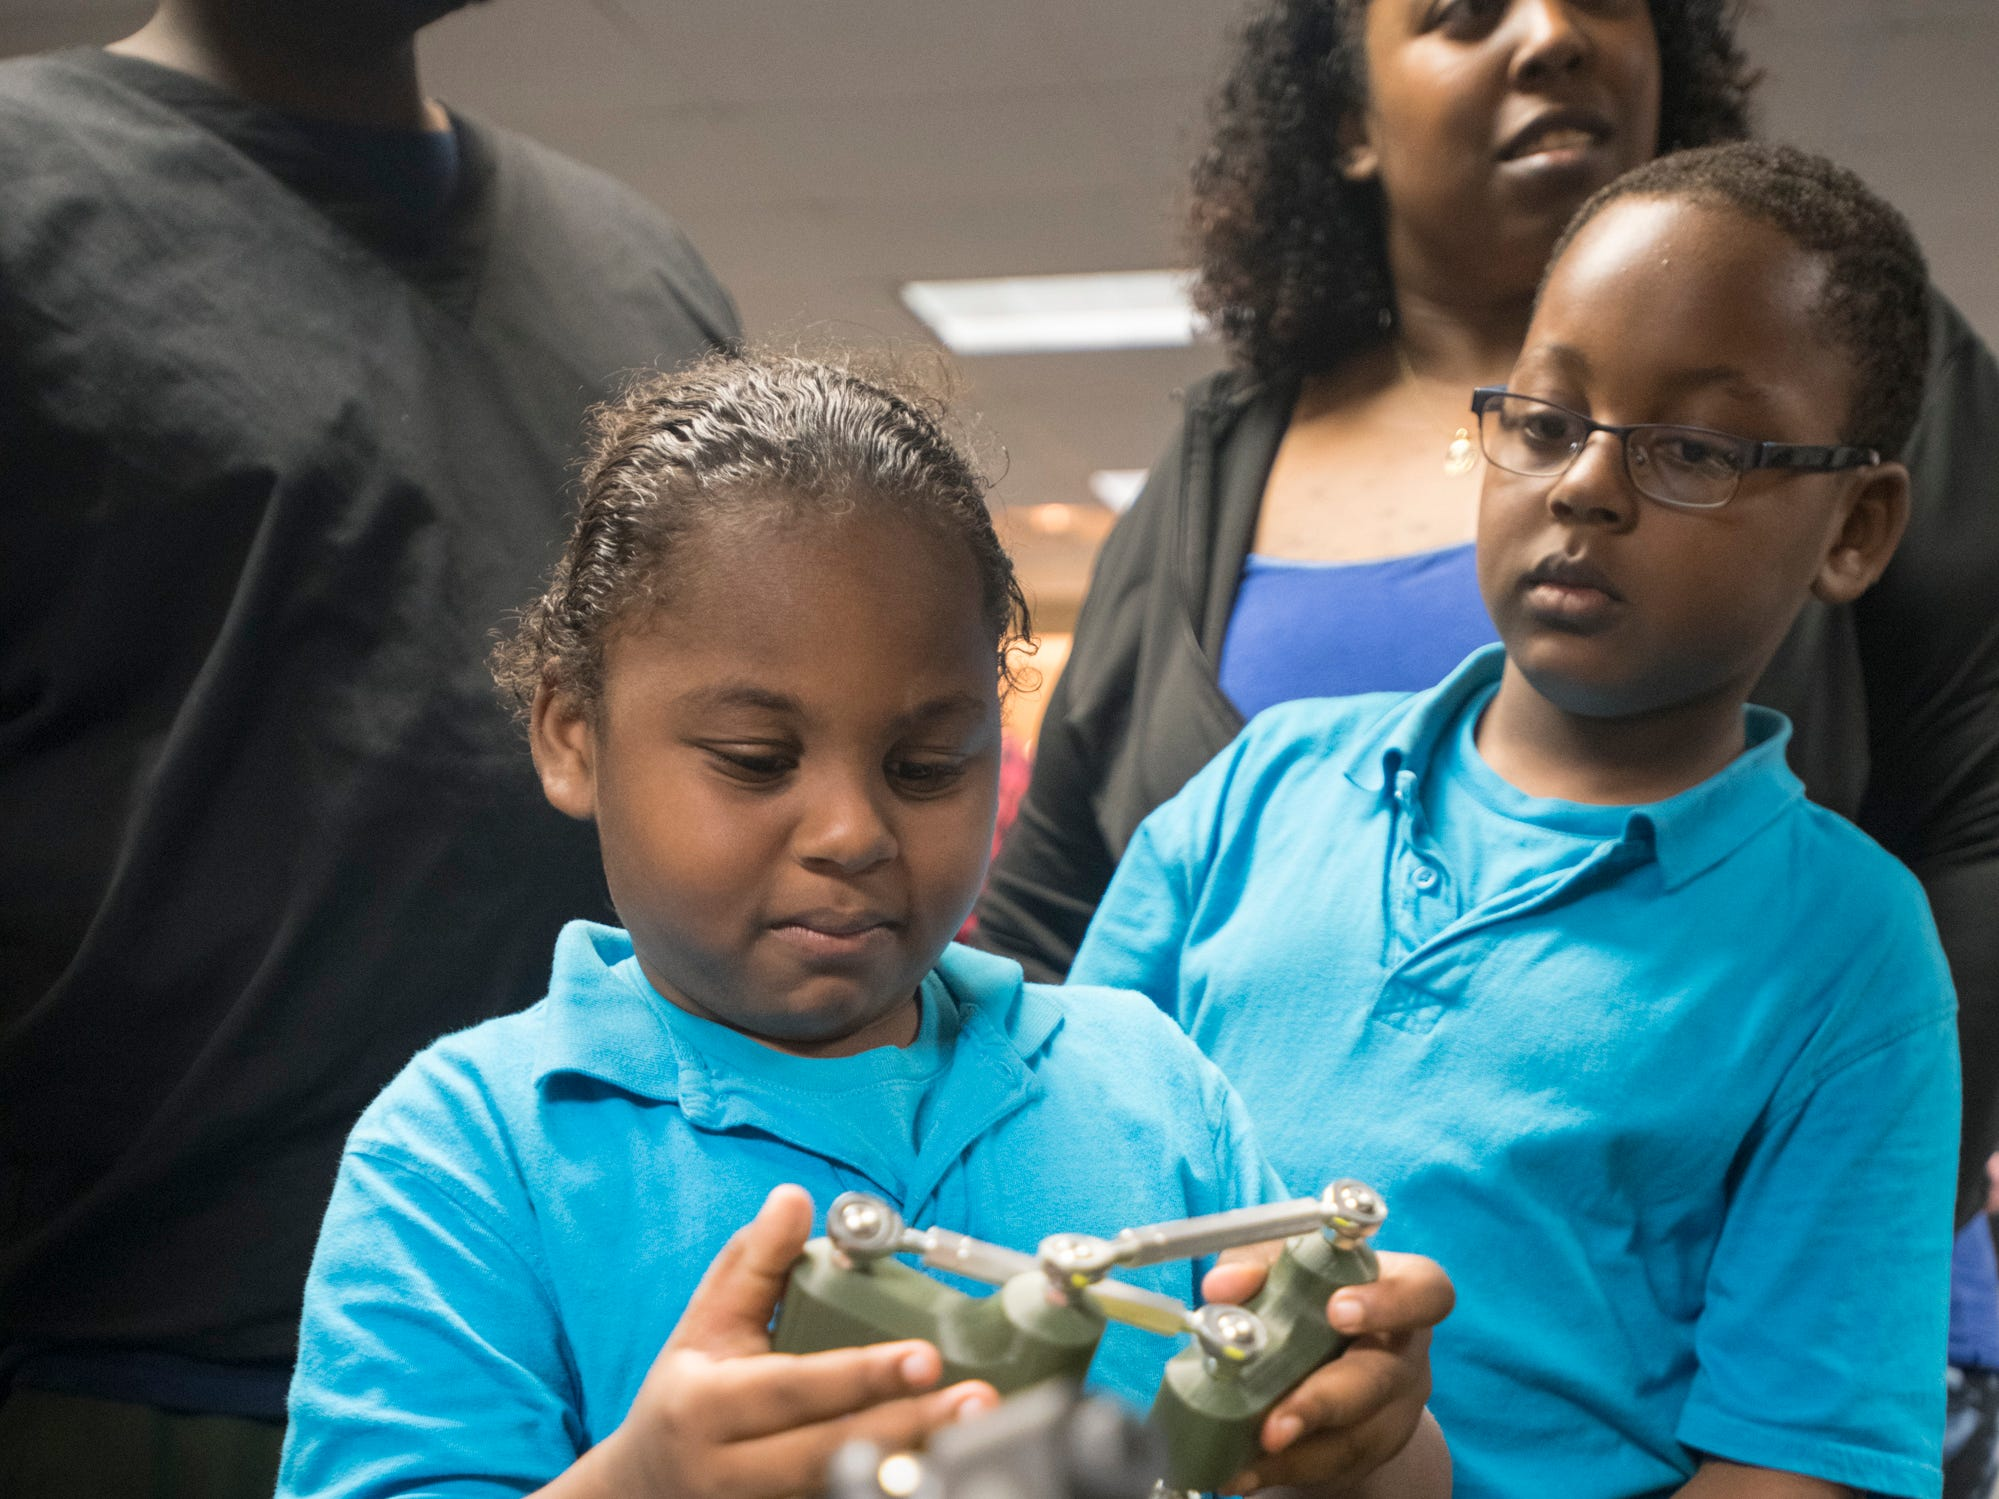 Joahua Mosley, 6, left, and Justin Mosley Jr. 7, check out mechanical parts during the IHMC Open House in downtown Pensacola on Friday, April 12, 2019.